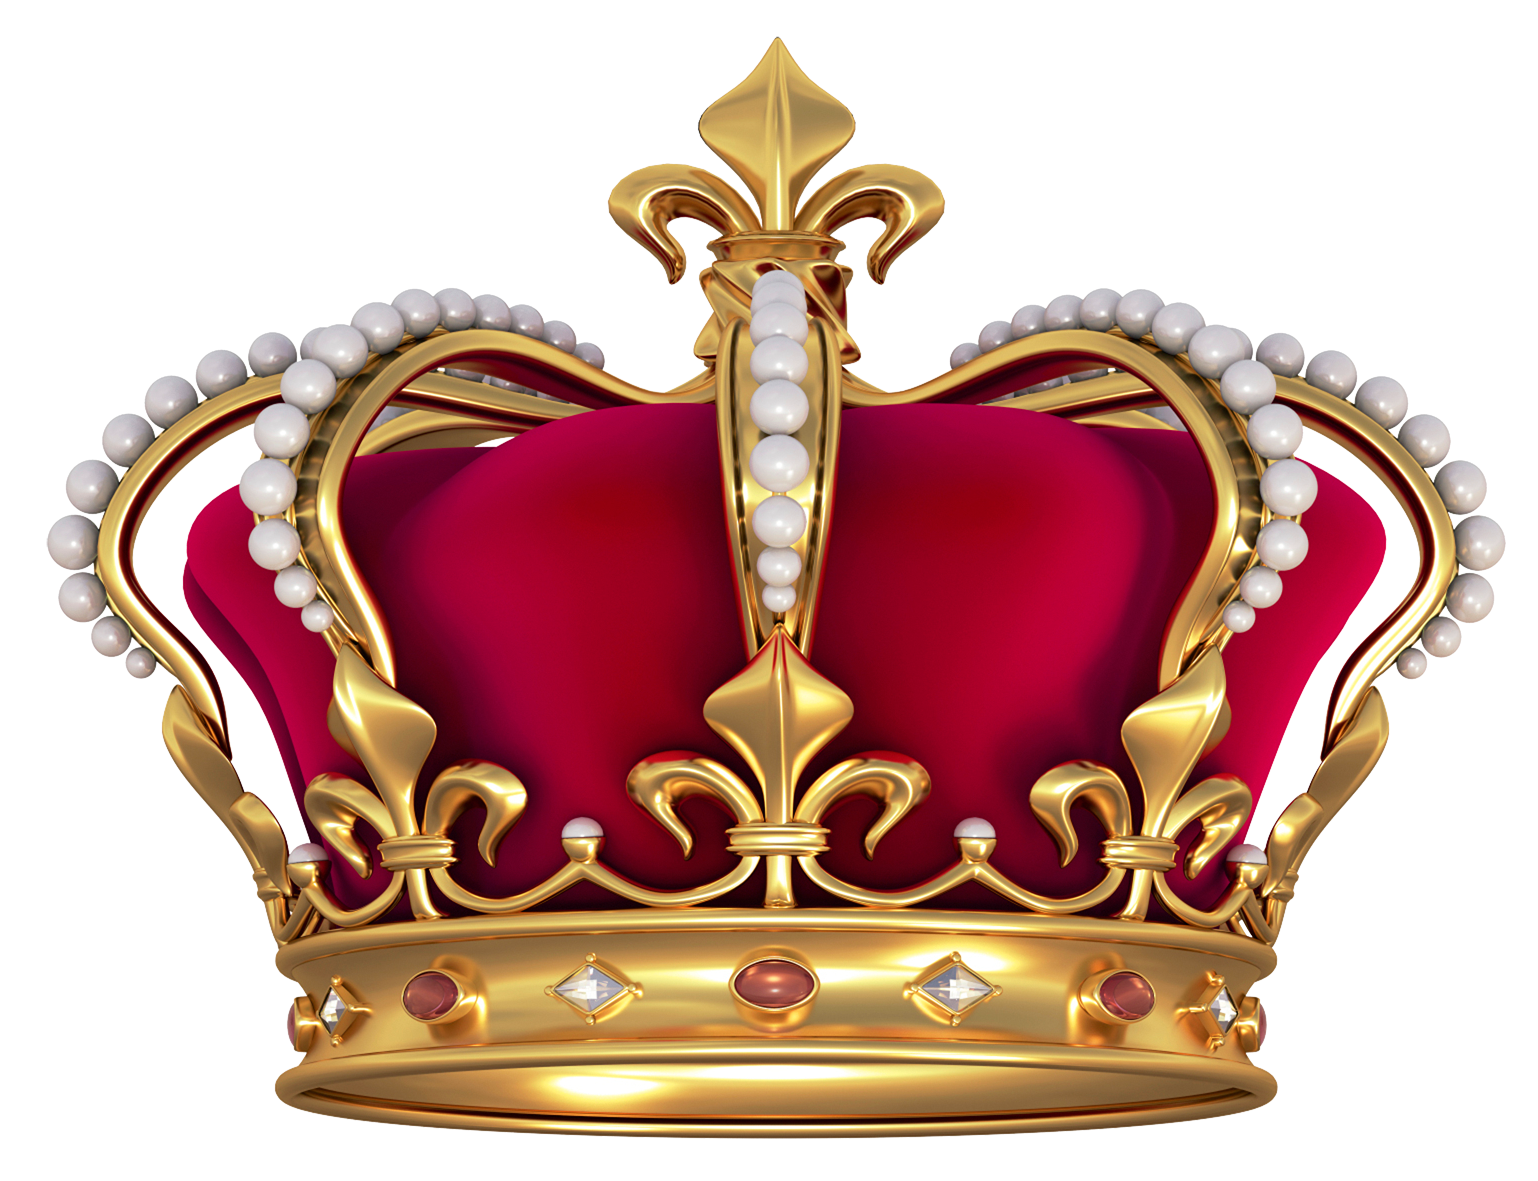 Red crown blue crown clipart vector royalty free Red Gold Crown with Pearls PNG Clipart Picture | Crafting - Regal ... vector royalty free